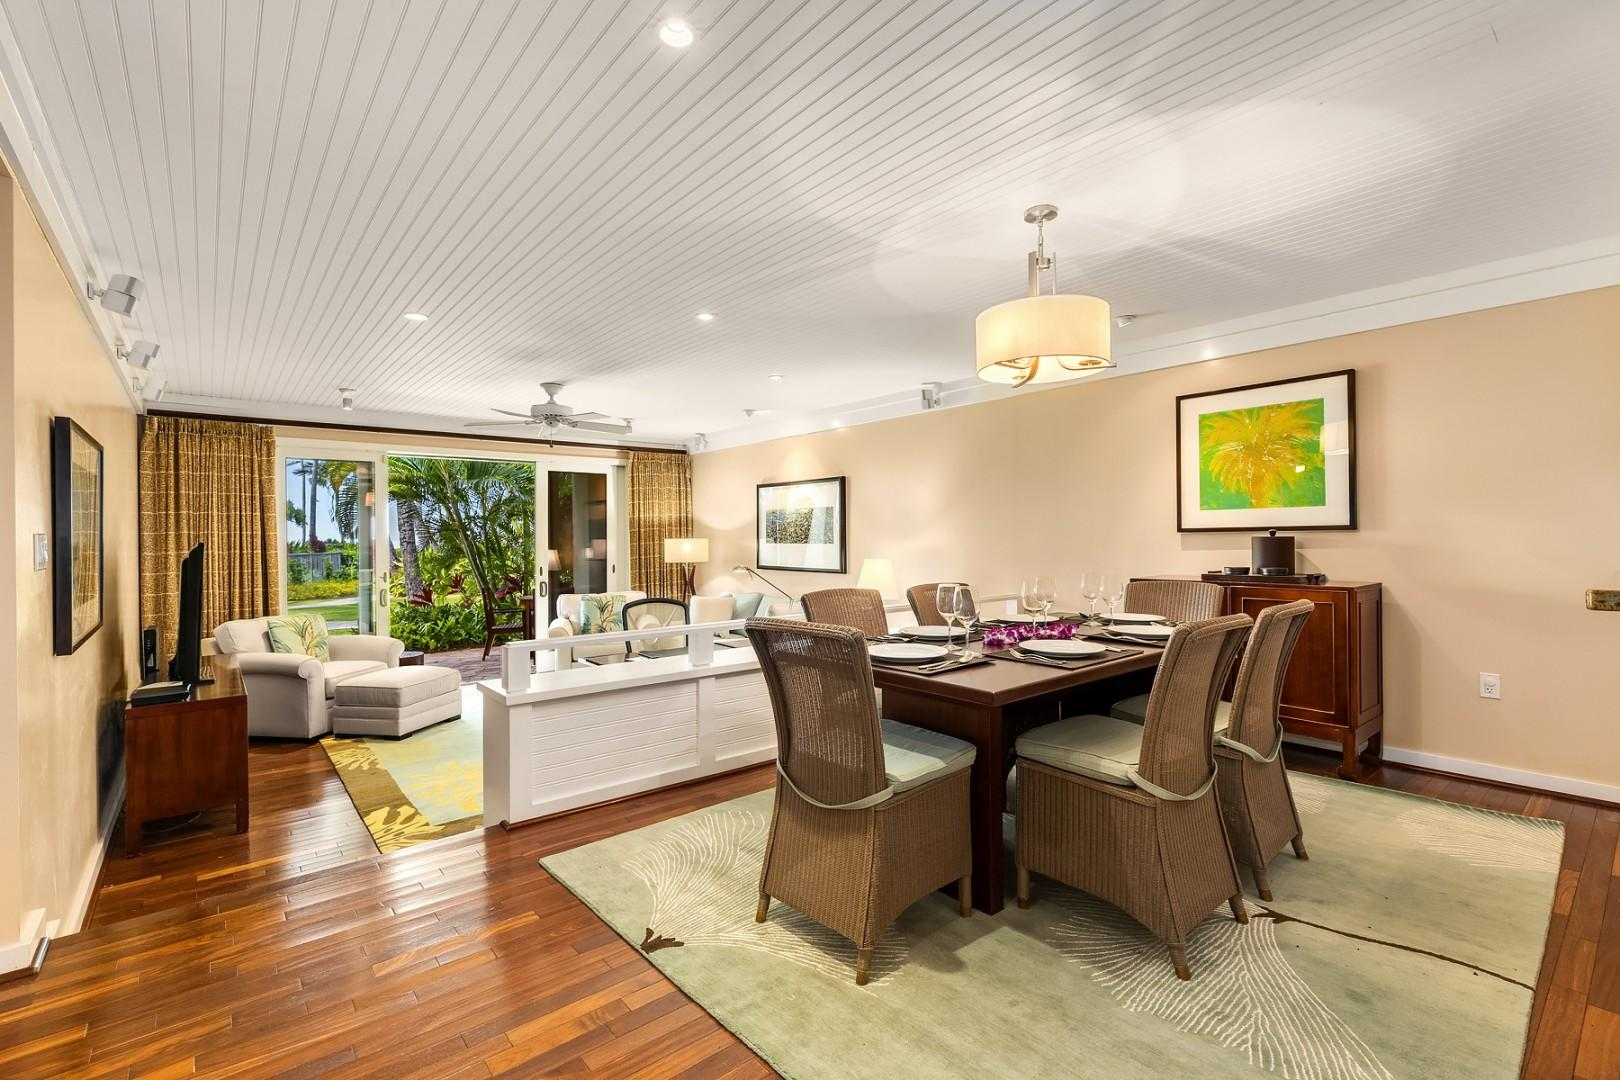 Dining area with a view overlooking the sunken living room.